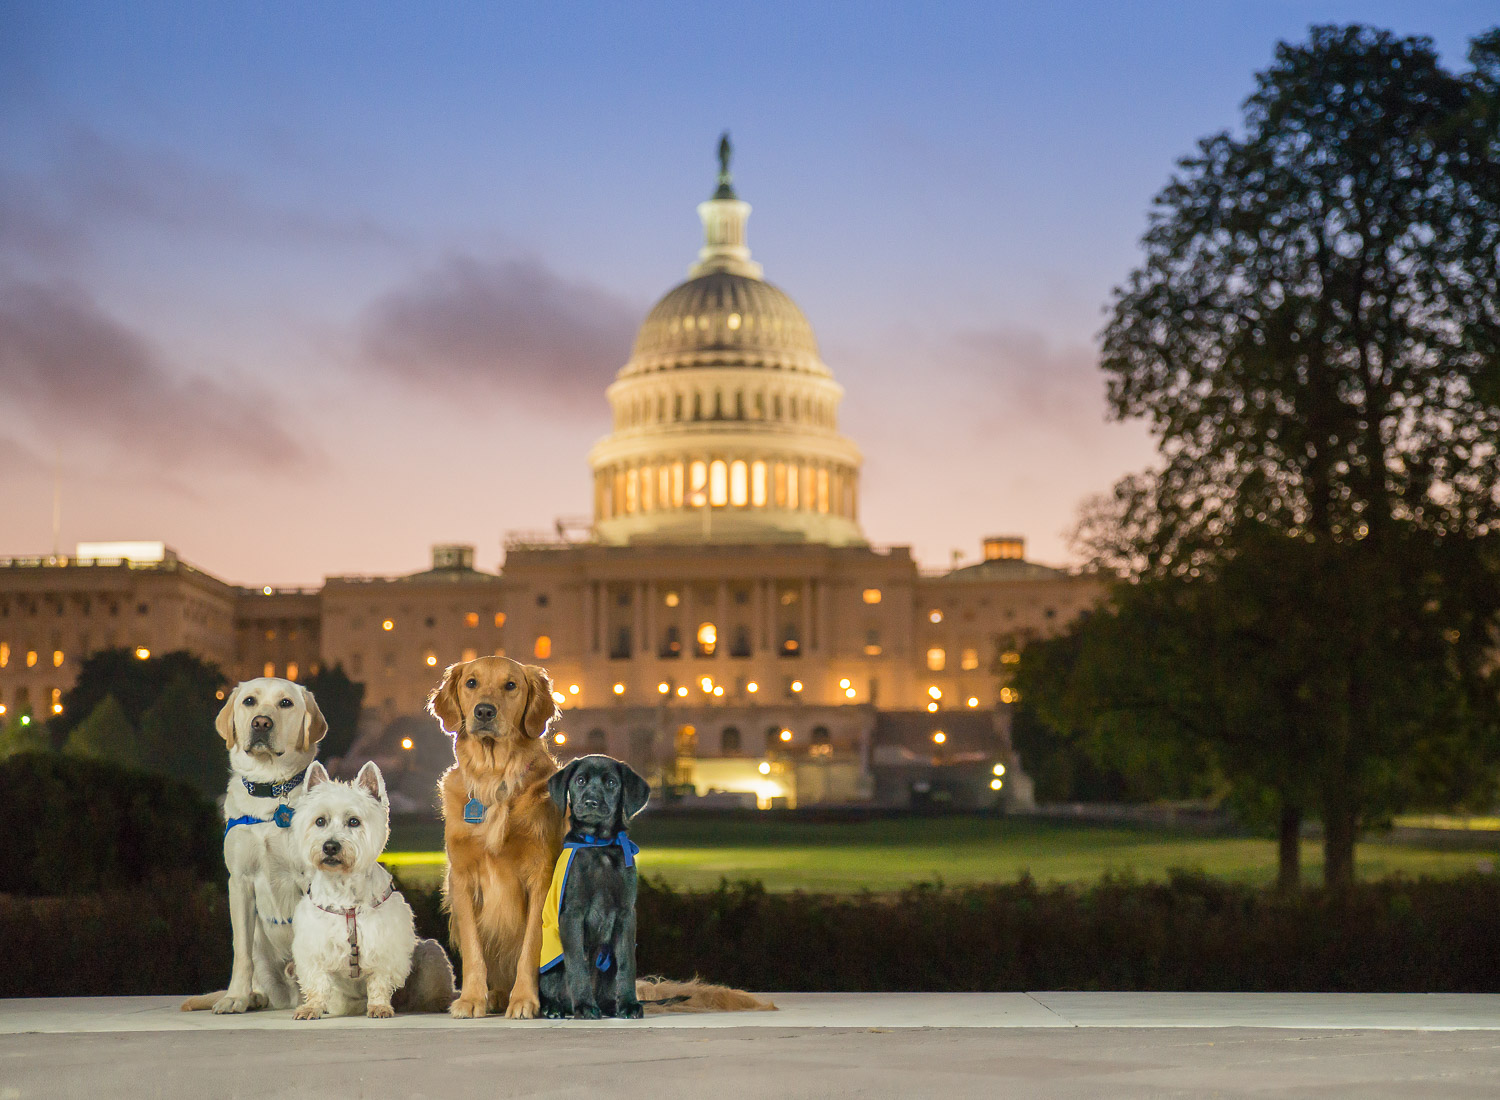 During the sunrise Erin's dogs sat perfectly in front of the US Capitol Building.